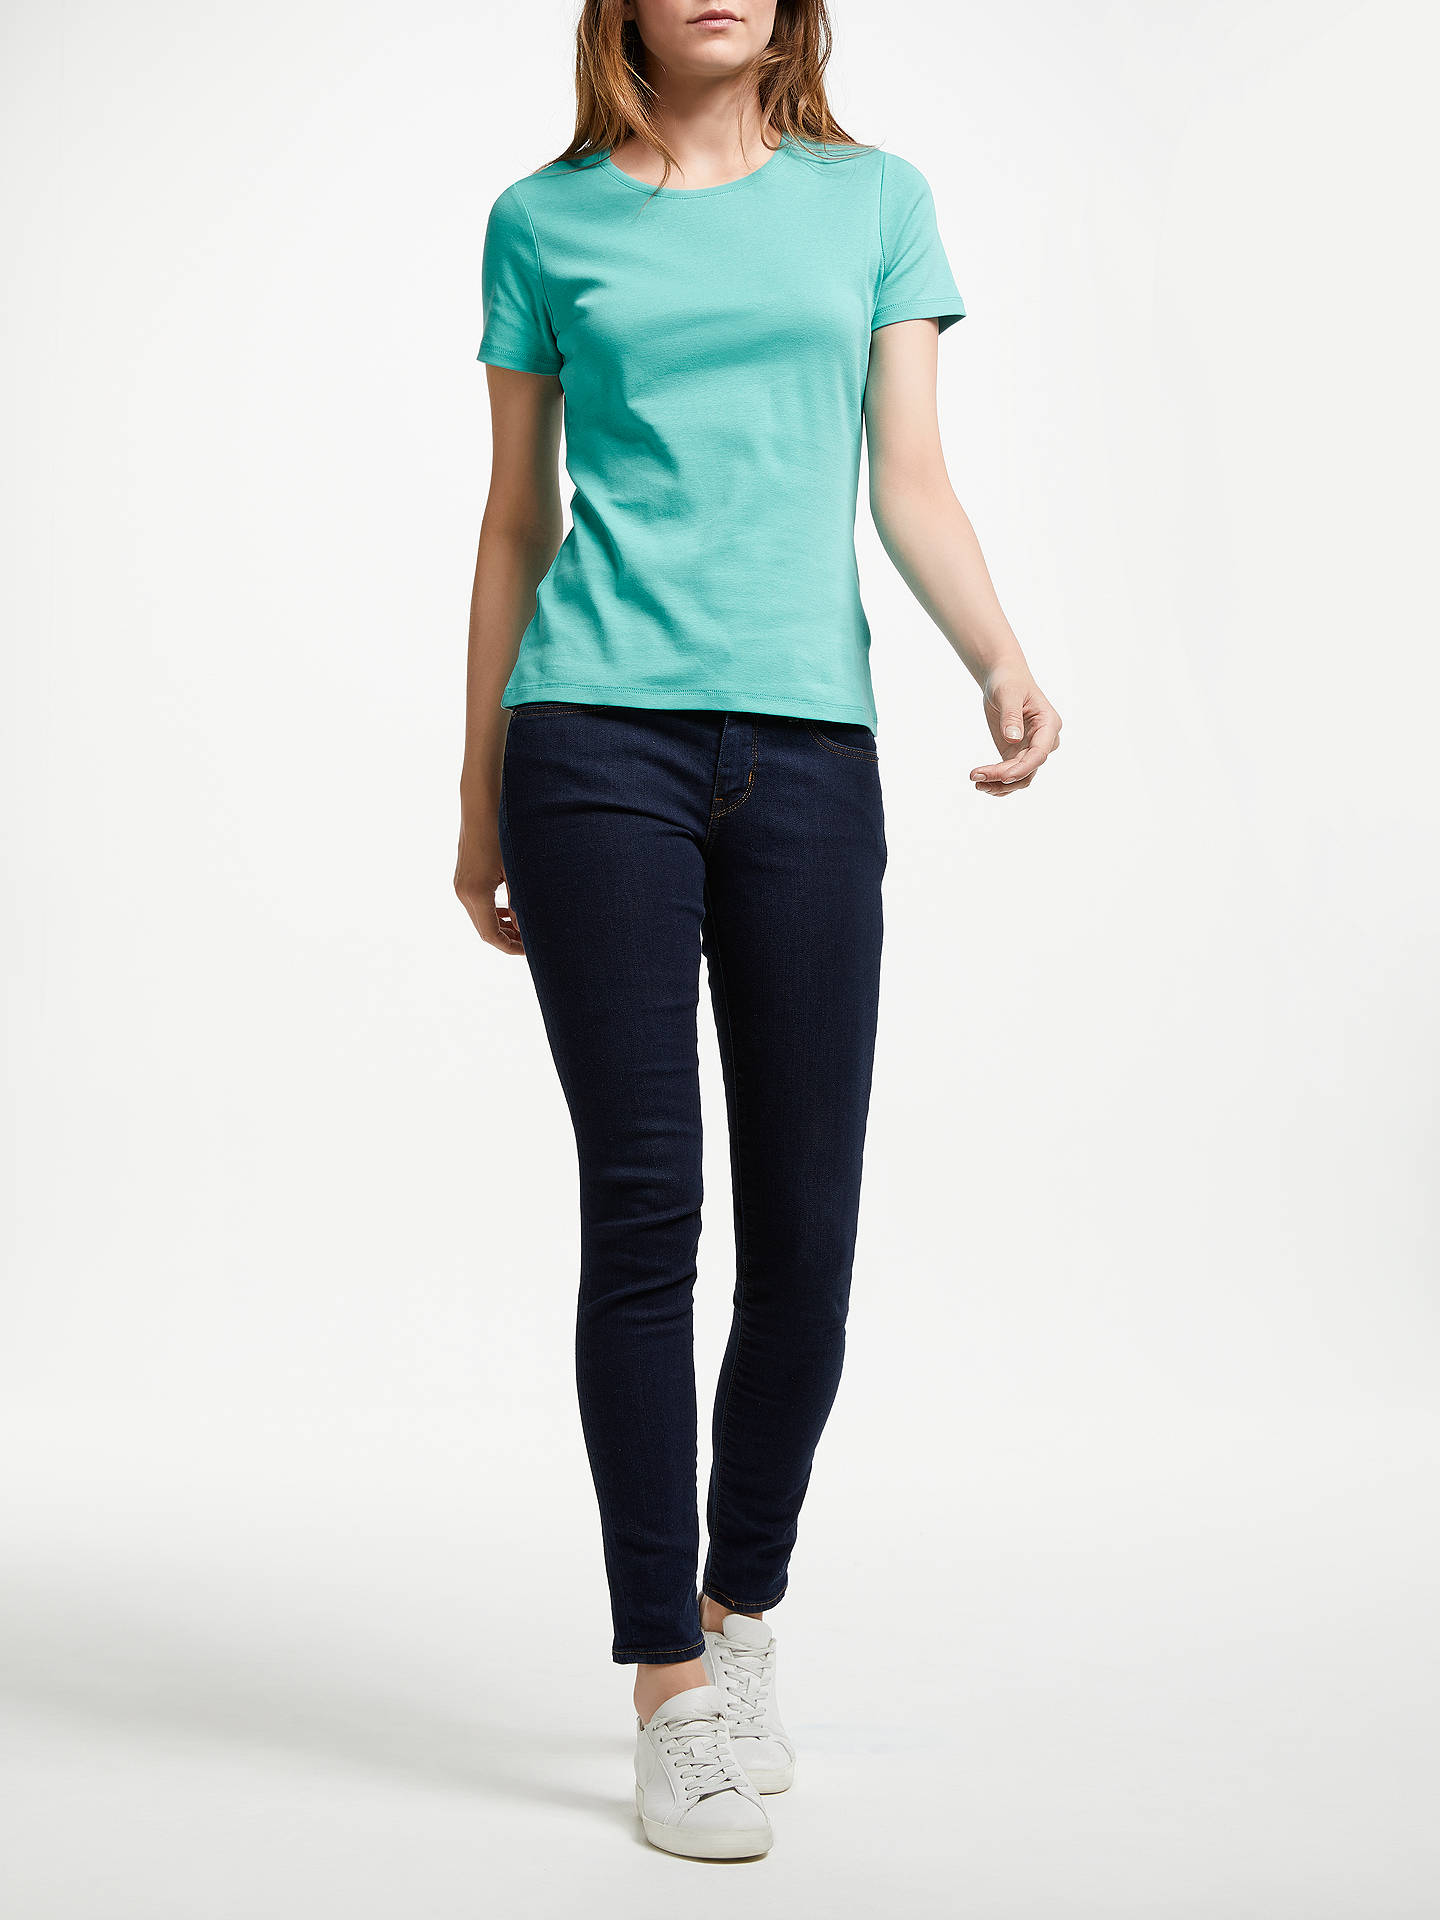 BuyJohn Lewis & Partners Crew Neck T-Shirt, Peacock Green, 8 Online at johnlewis.com